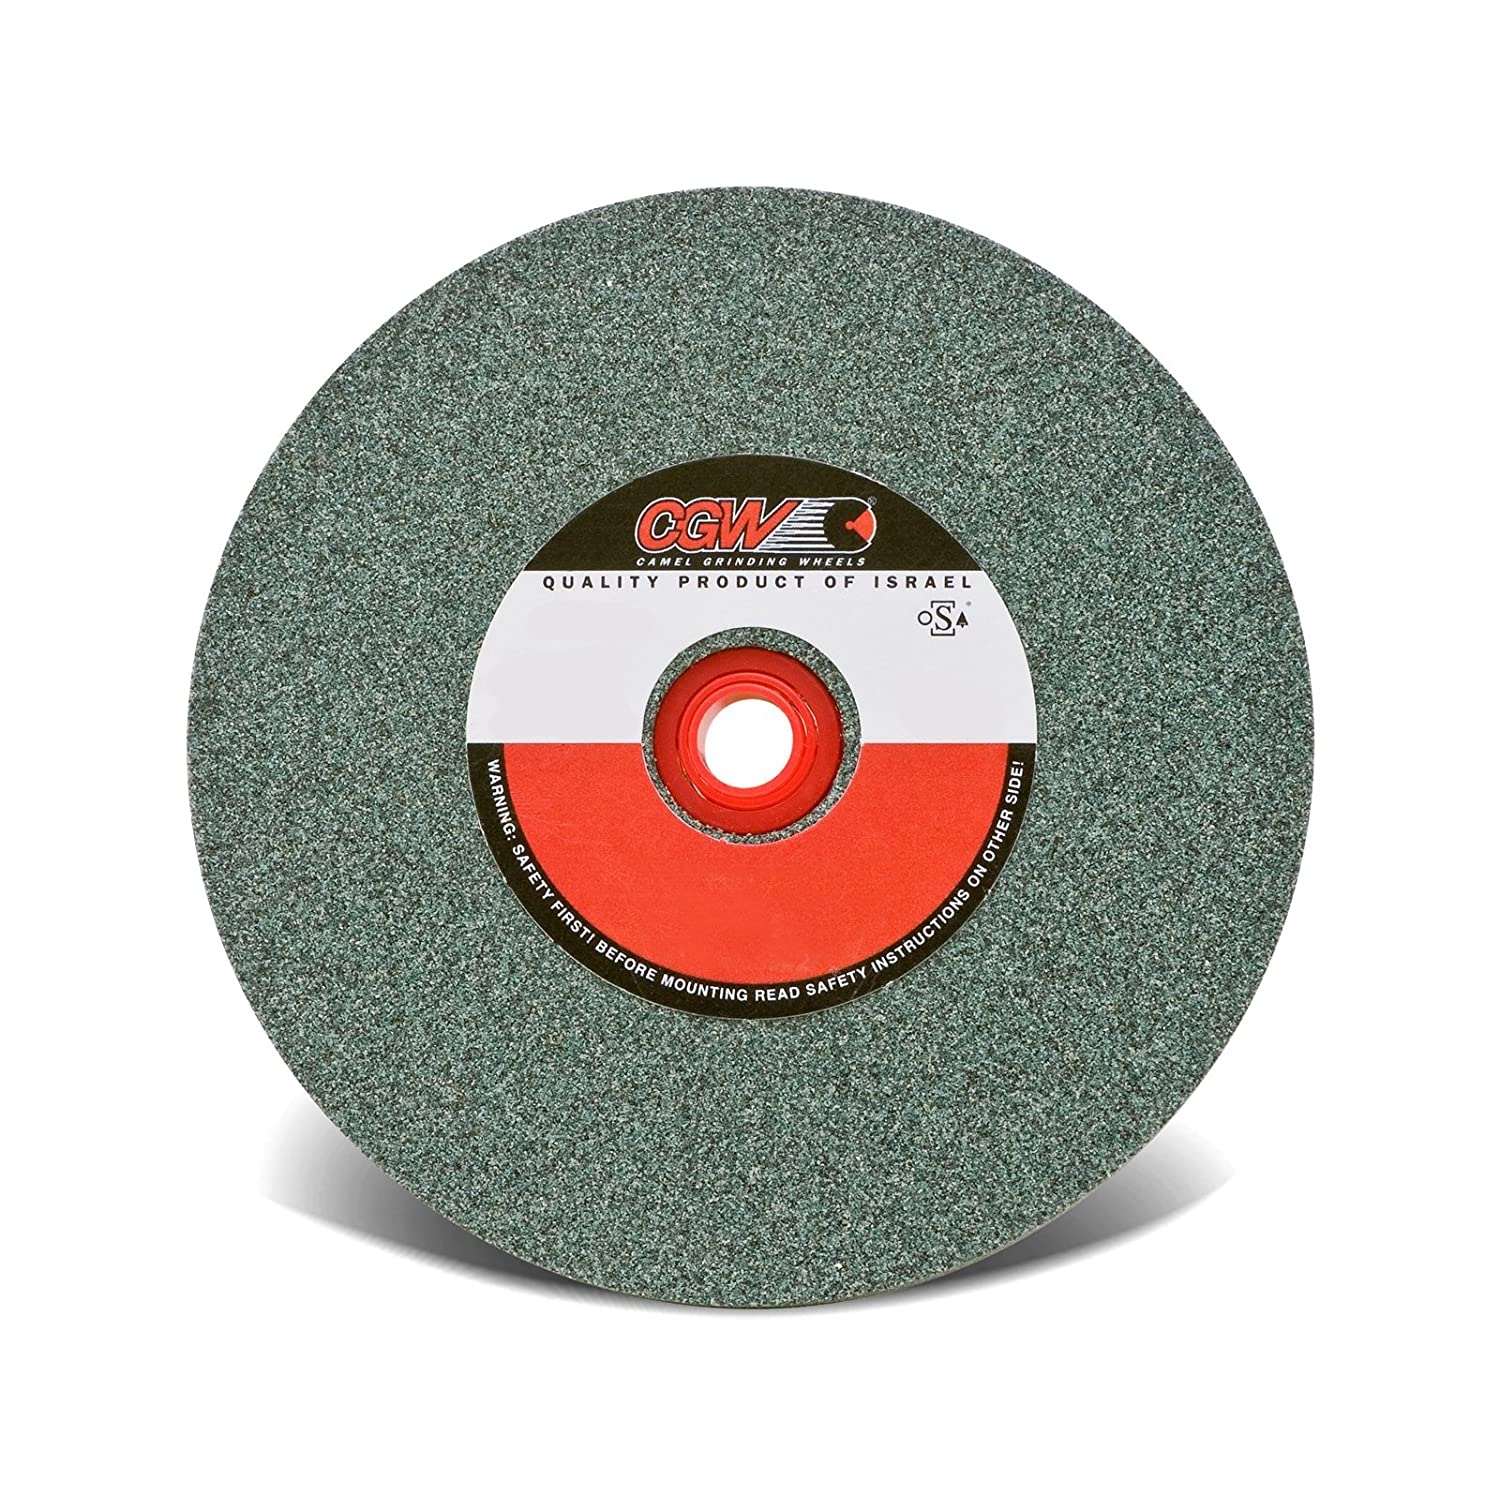 Bench Wheels Sold as 1 Each Carton Pack 6X3//4X1 Gc80-I-V Bench Wheel Green Silicon Carbide CGW Abrasives